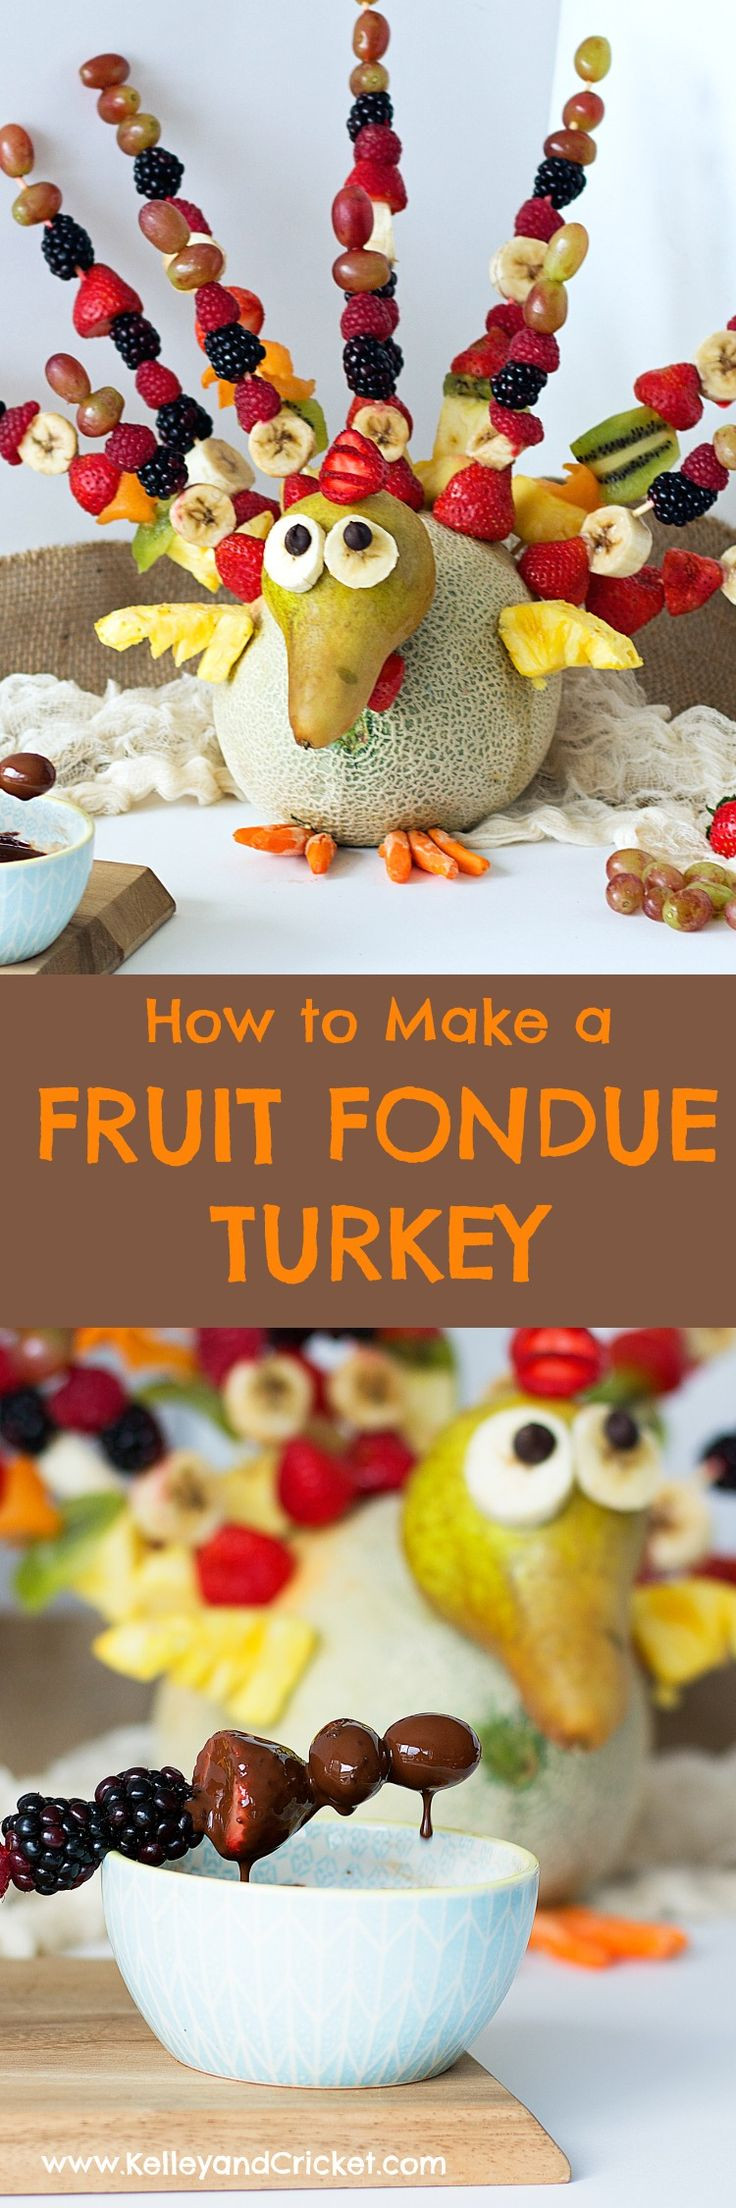 Thanksgiving Fruit Desserts  Best 20 Fruit turkey ideas on Pinterest